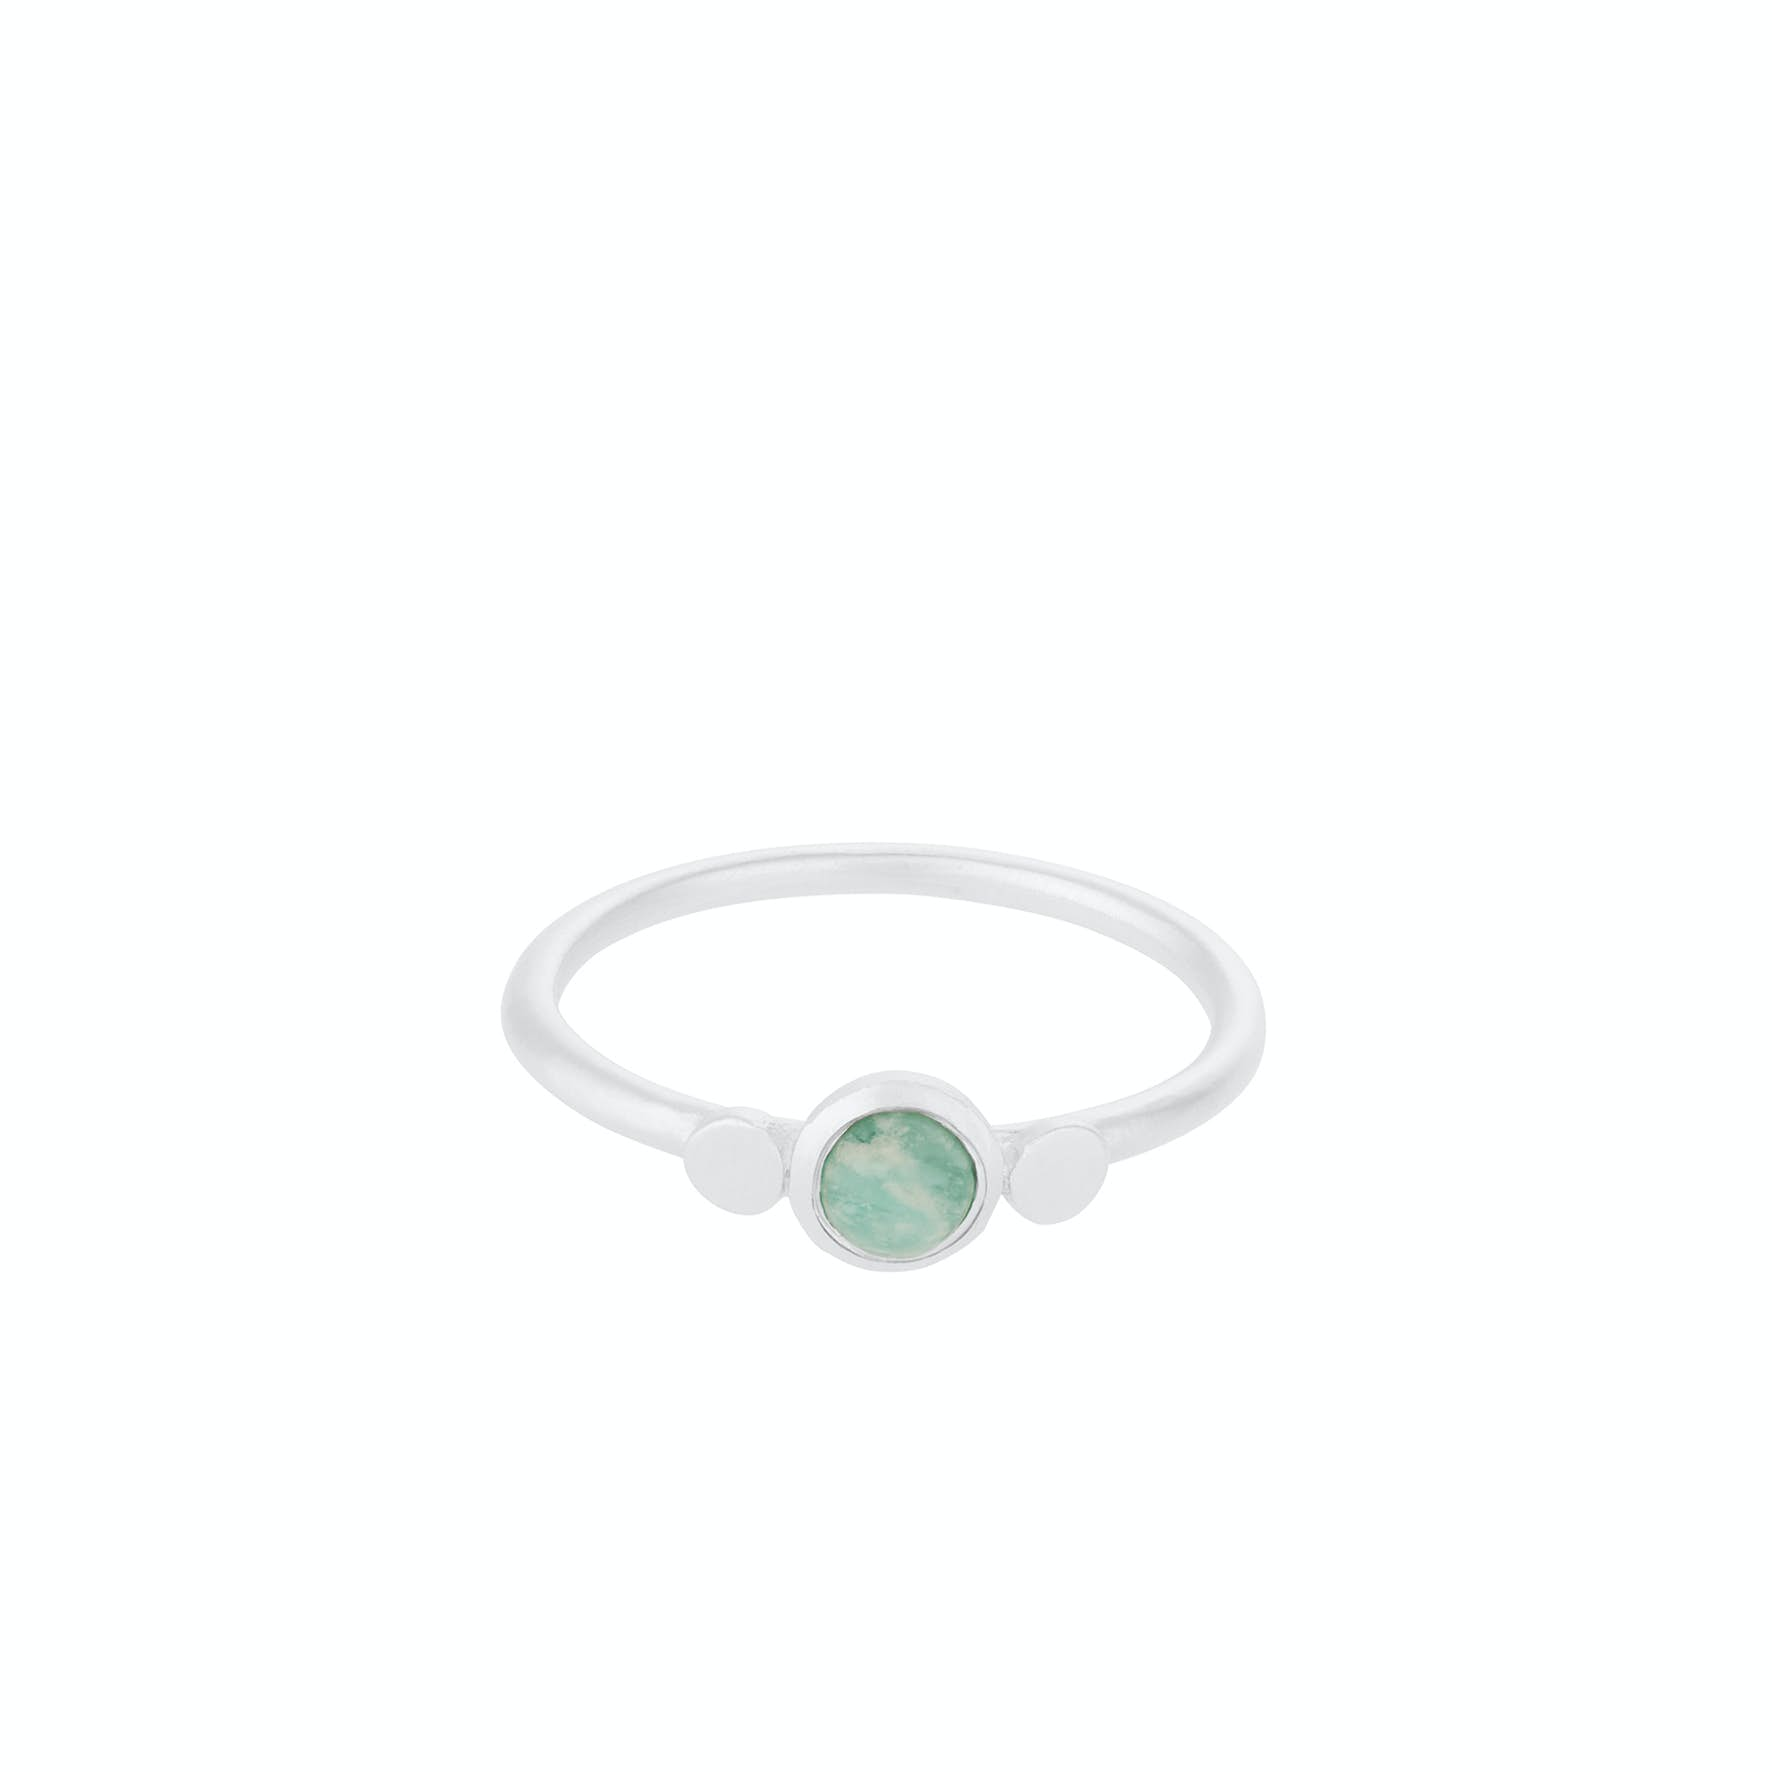 Fjord Ring from Pernille Corydon in Silver Sterling 925|Amazonite